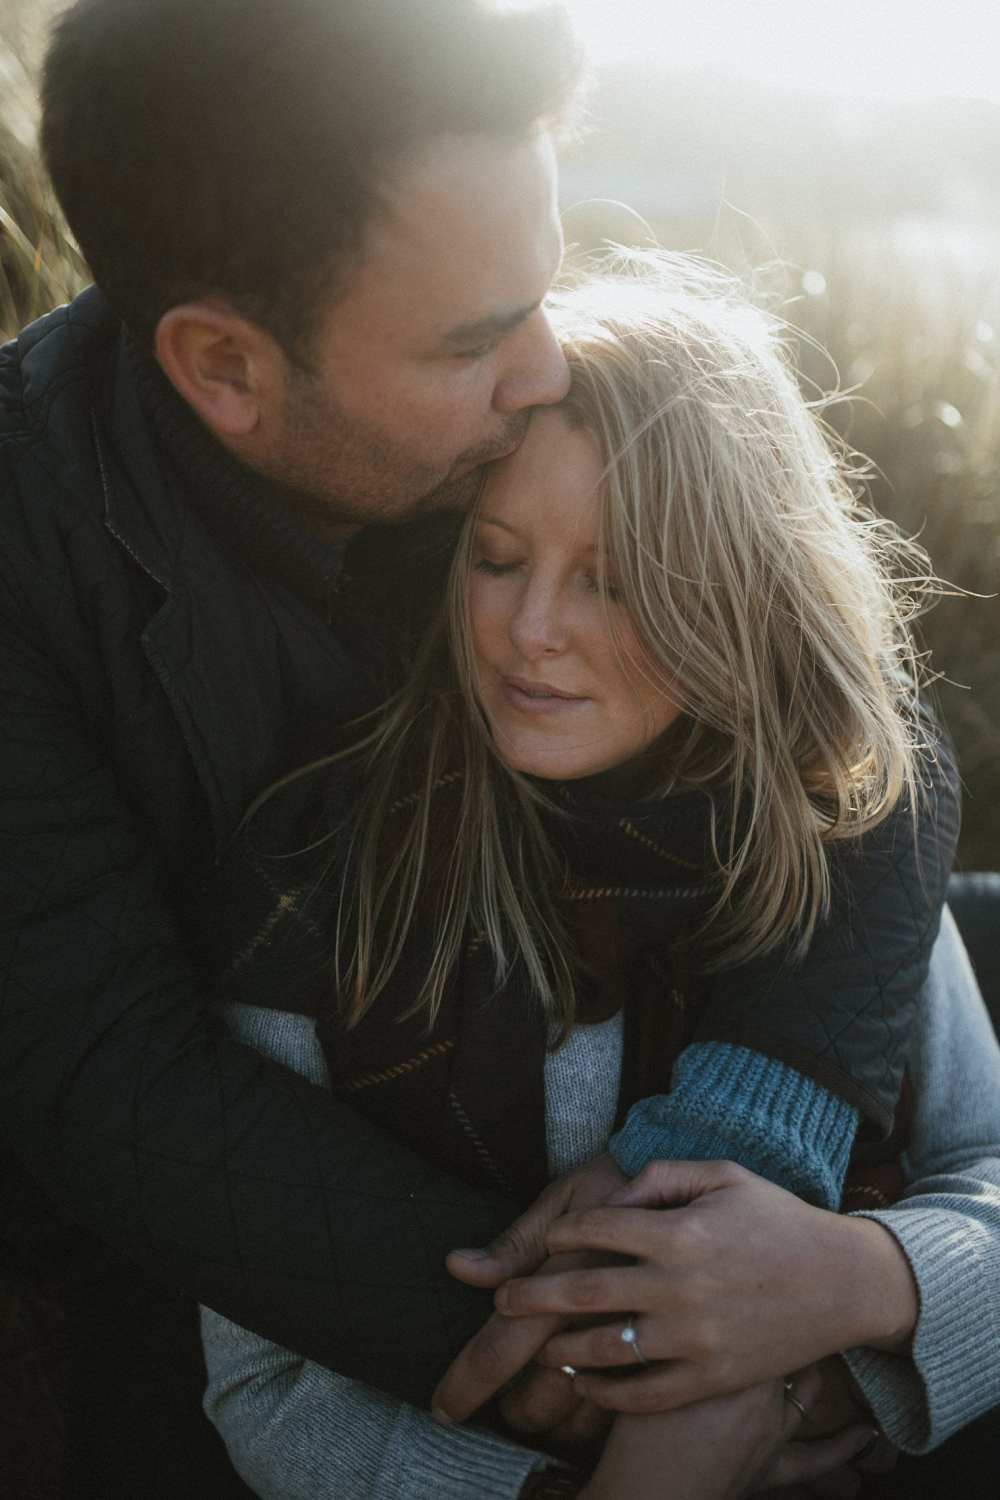 Engagement session in Cornwall, at Constantine bay beach